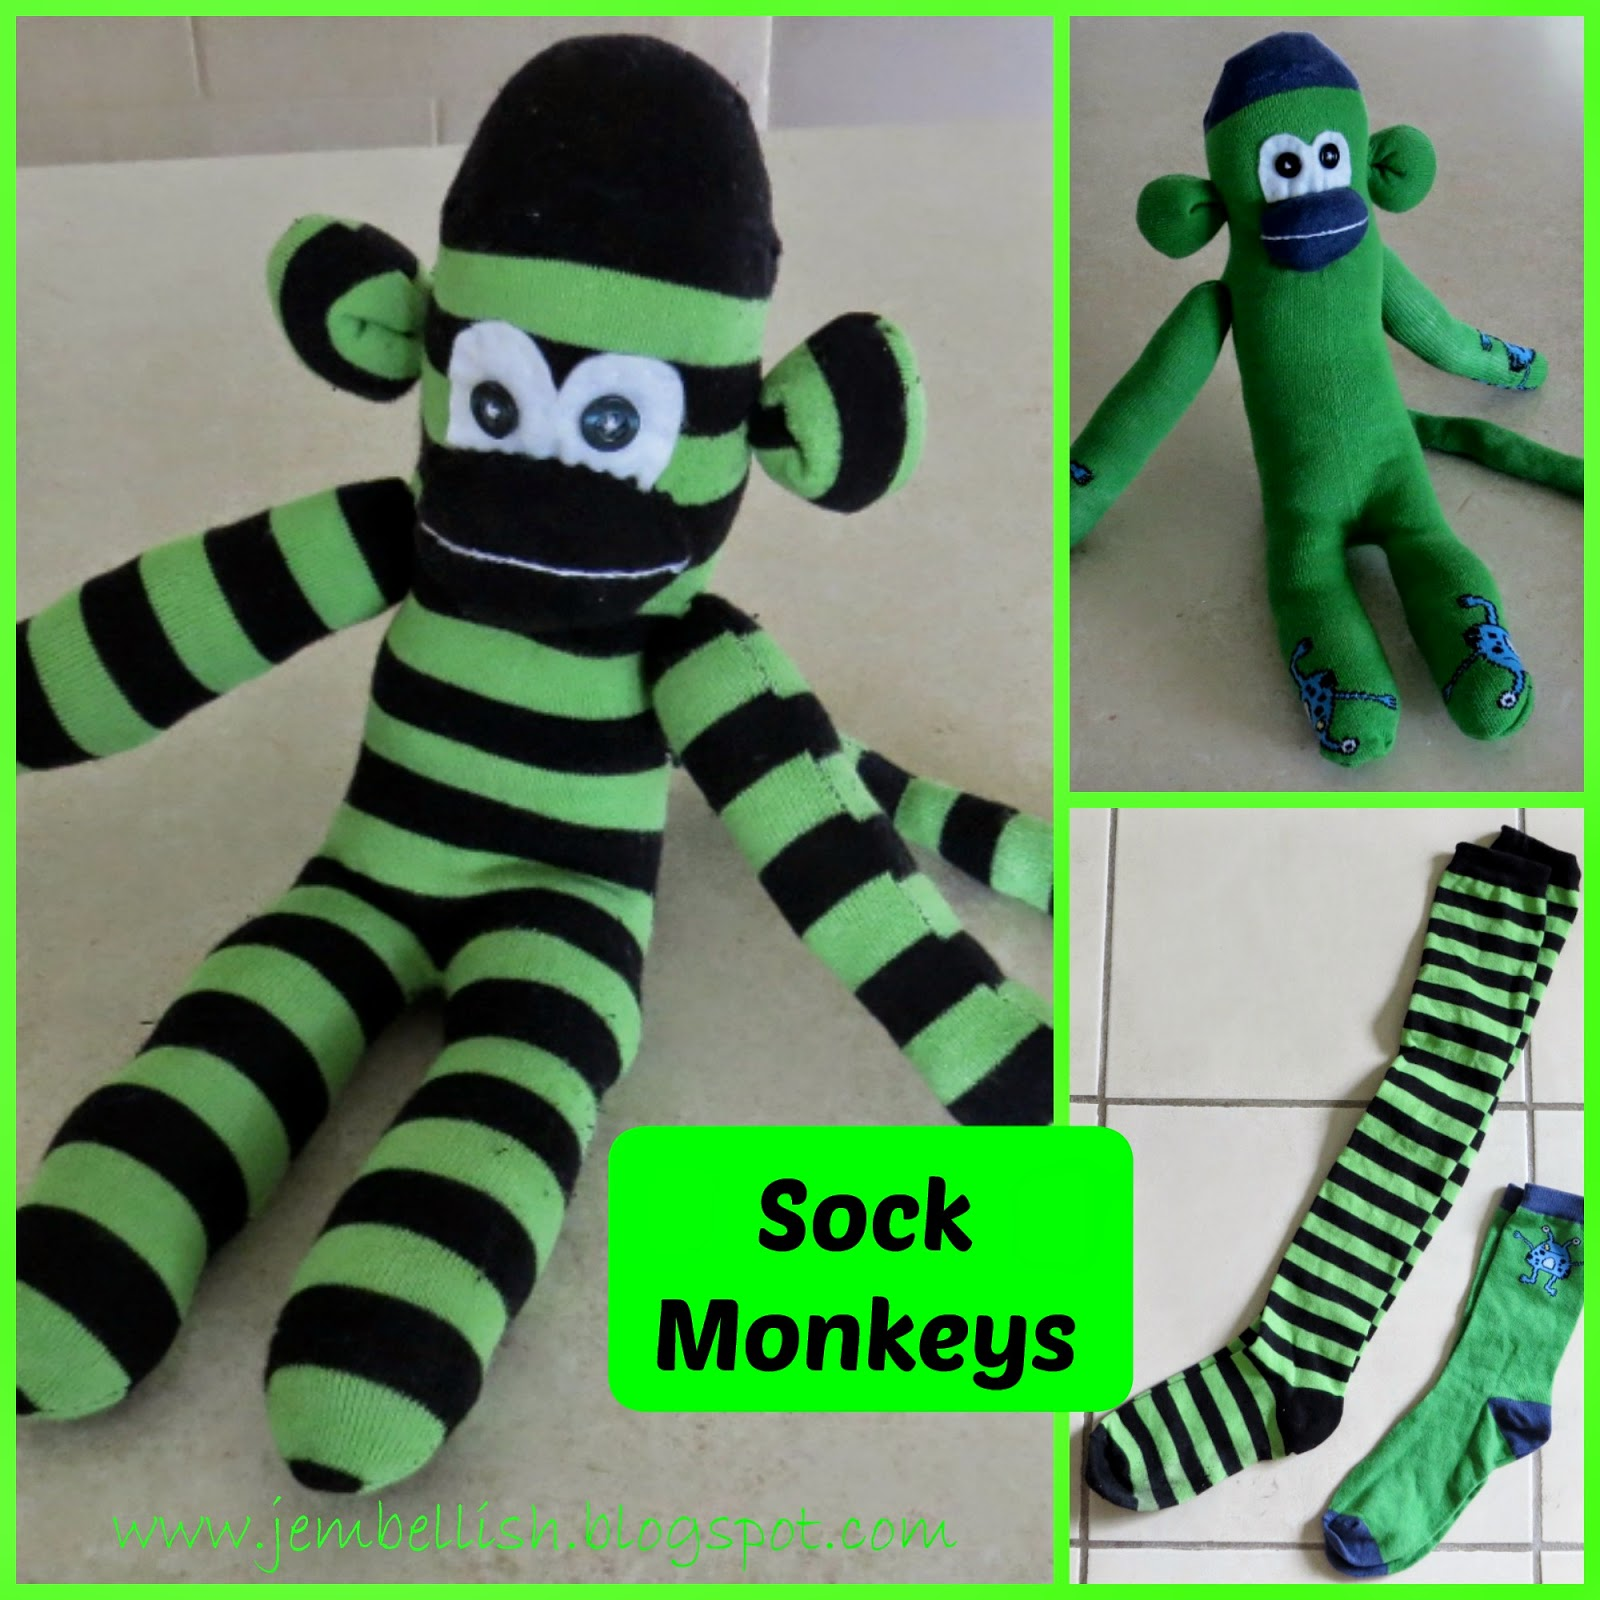 More Sock Monkeys